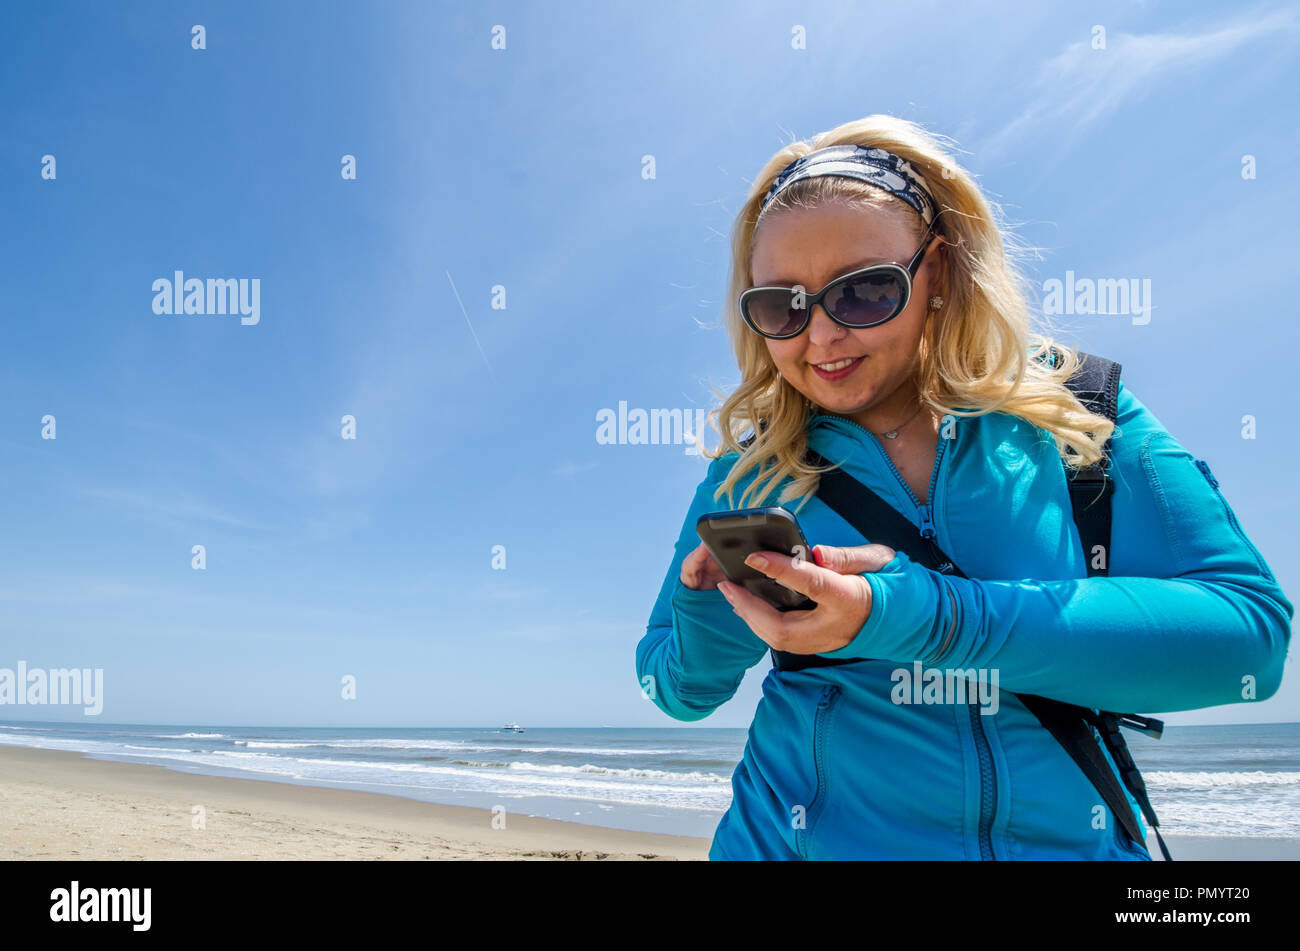 Blonde woman uses smartphone while on the beach at the ocean - Stock Image